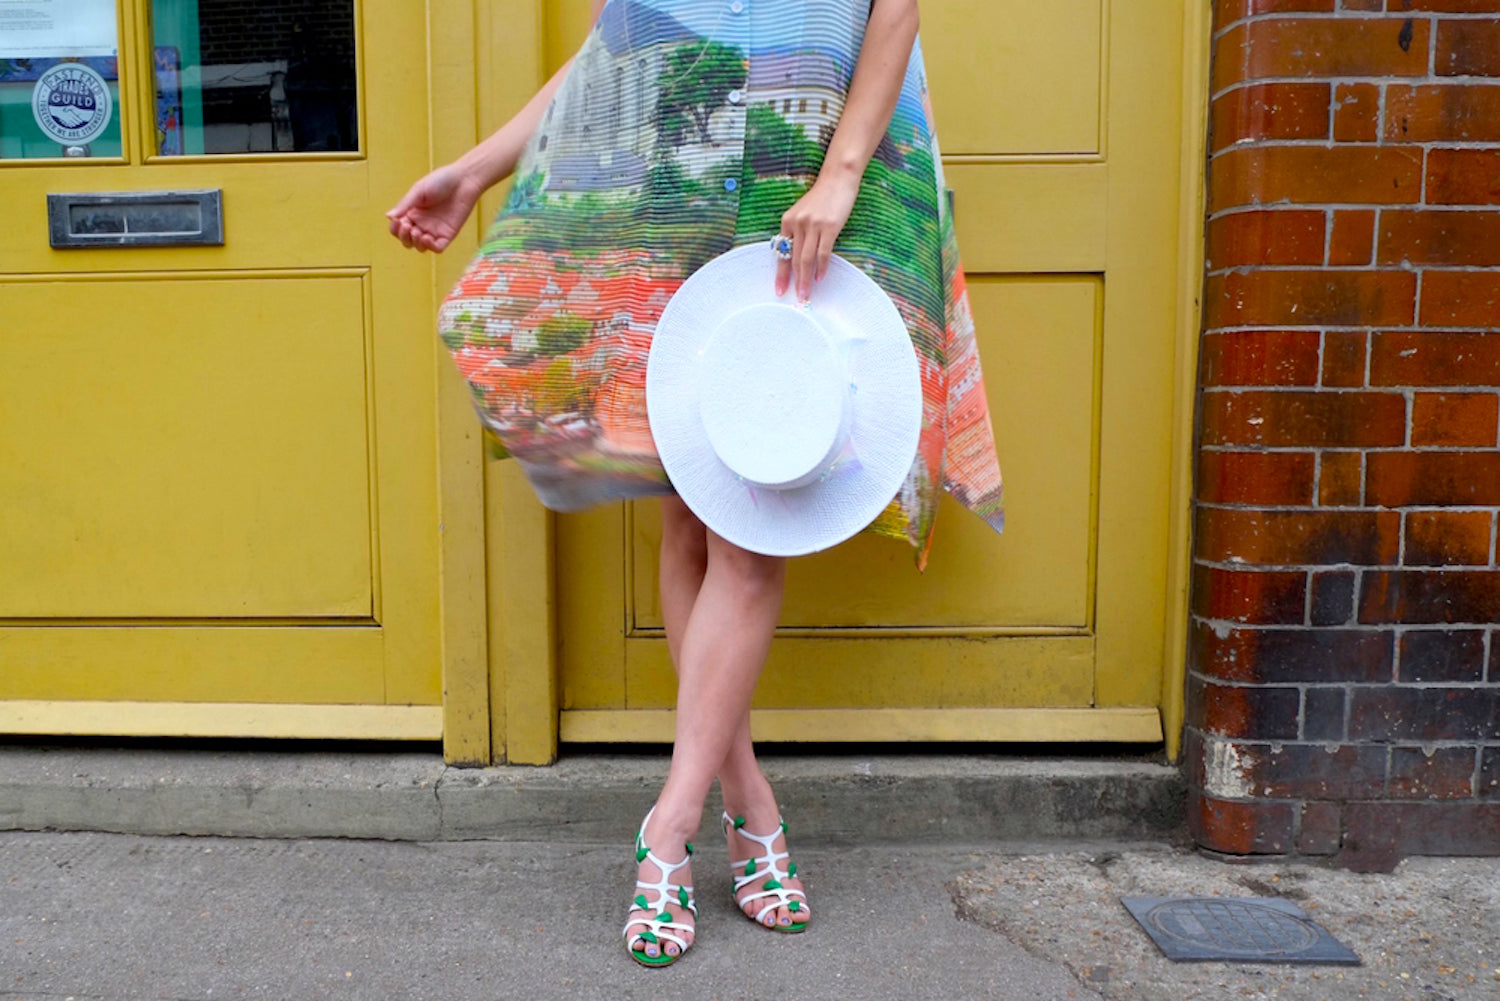 Lizzie-McQuade-luxury-hats-Marie-Antoinettes-chic-french-countryside-look-white-paper-boater-2-1p87